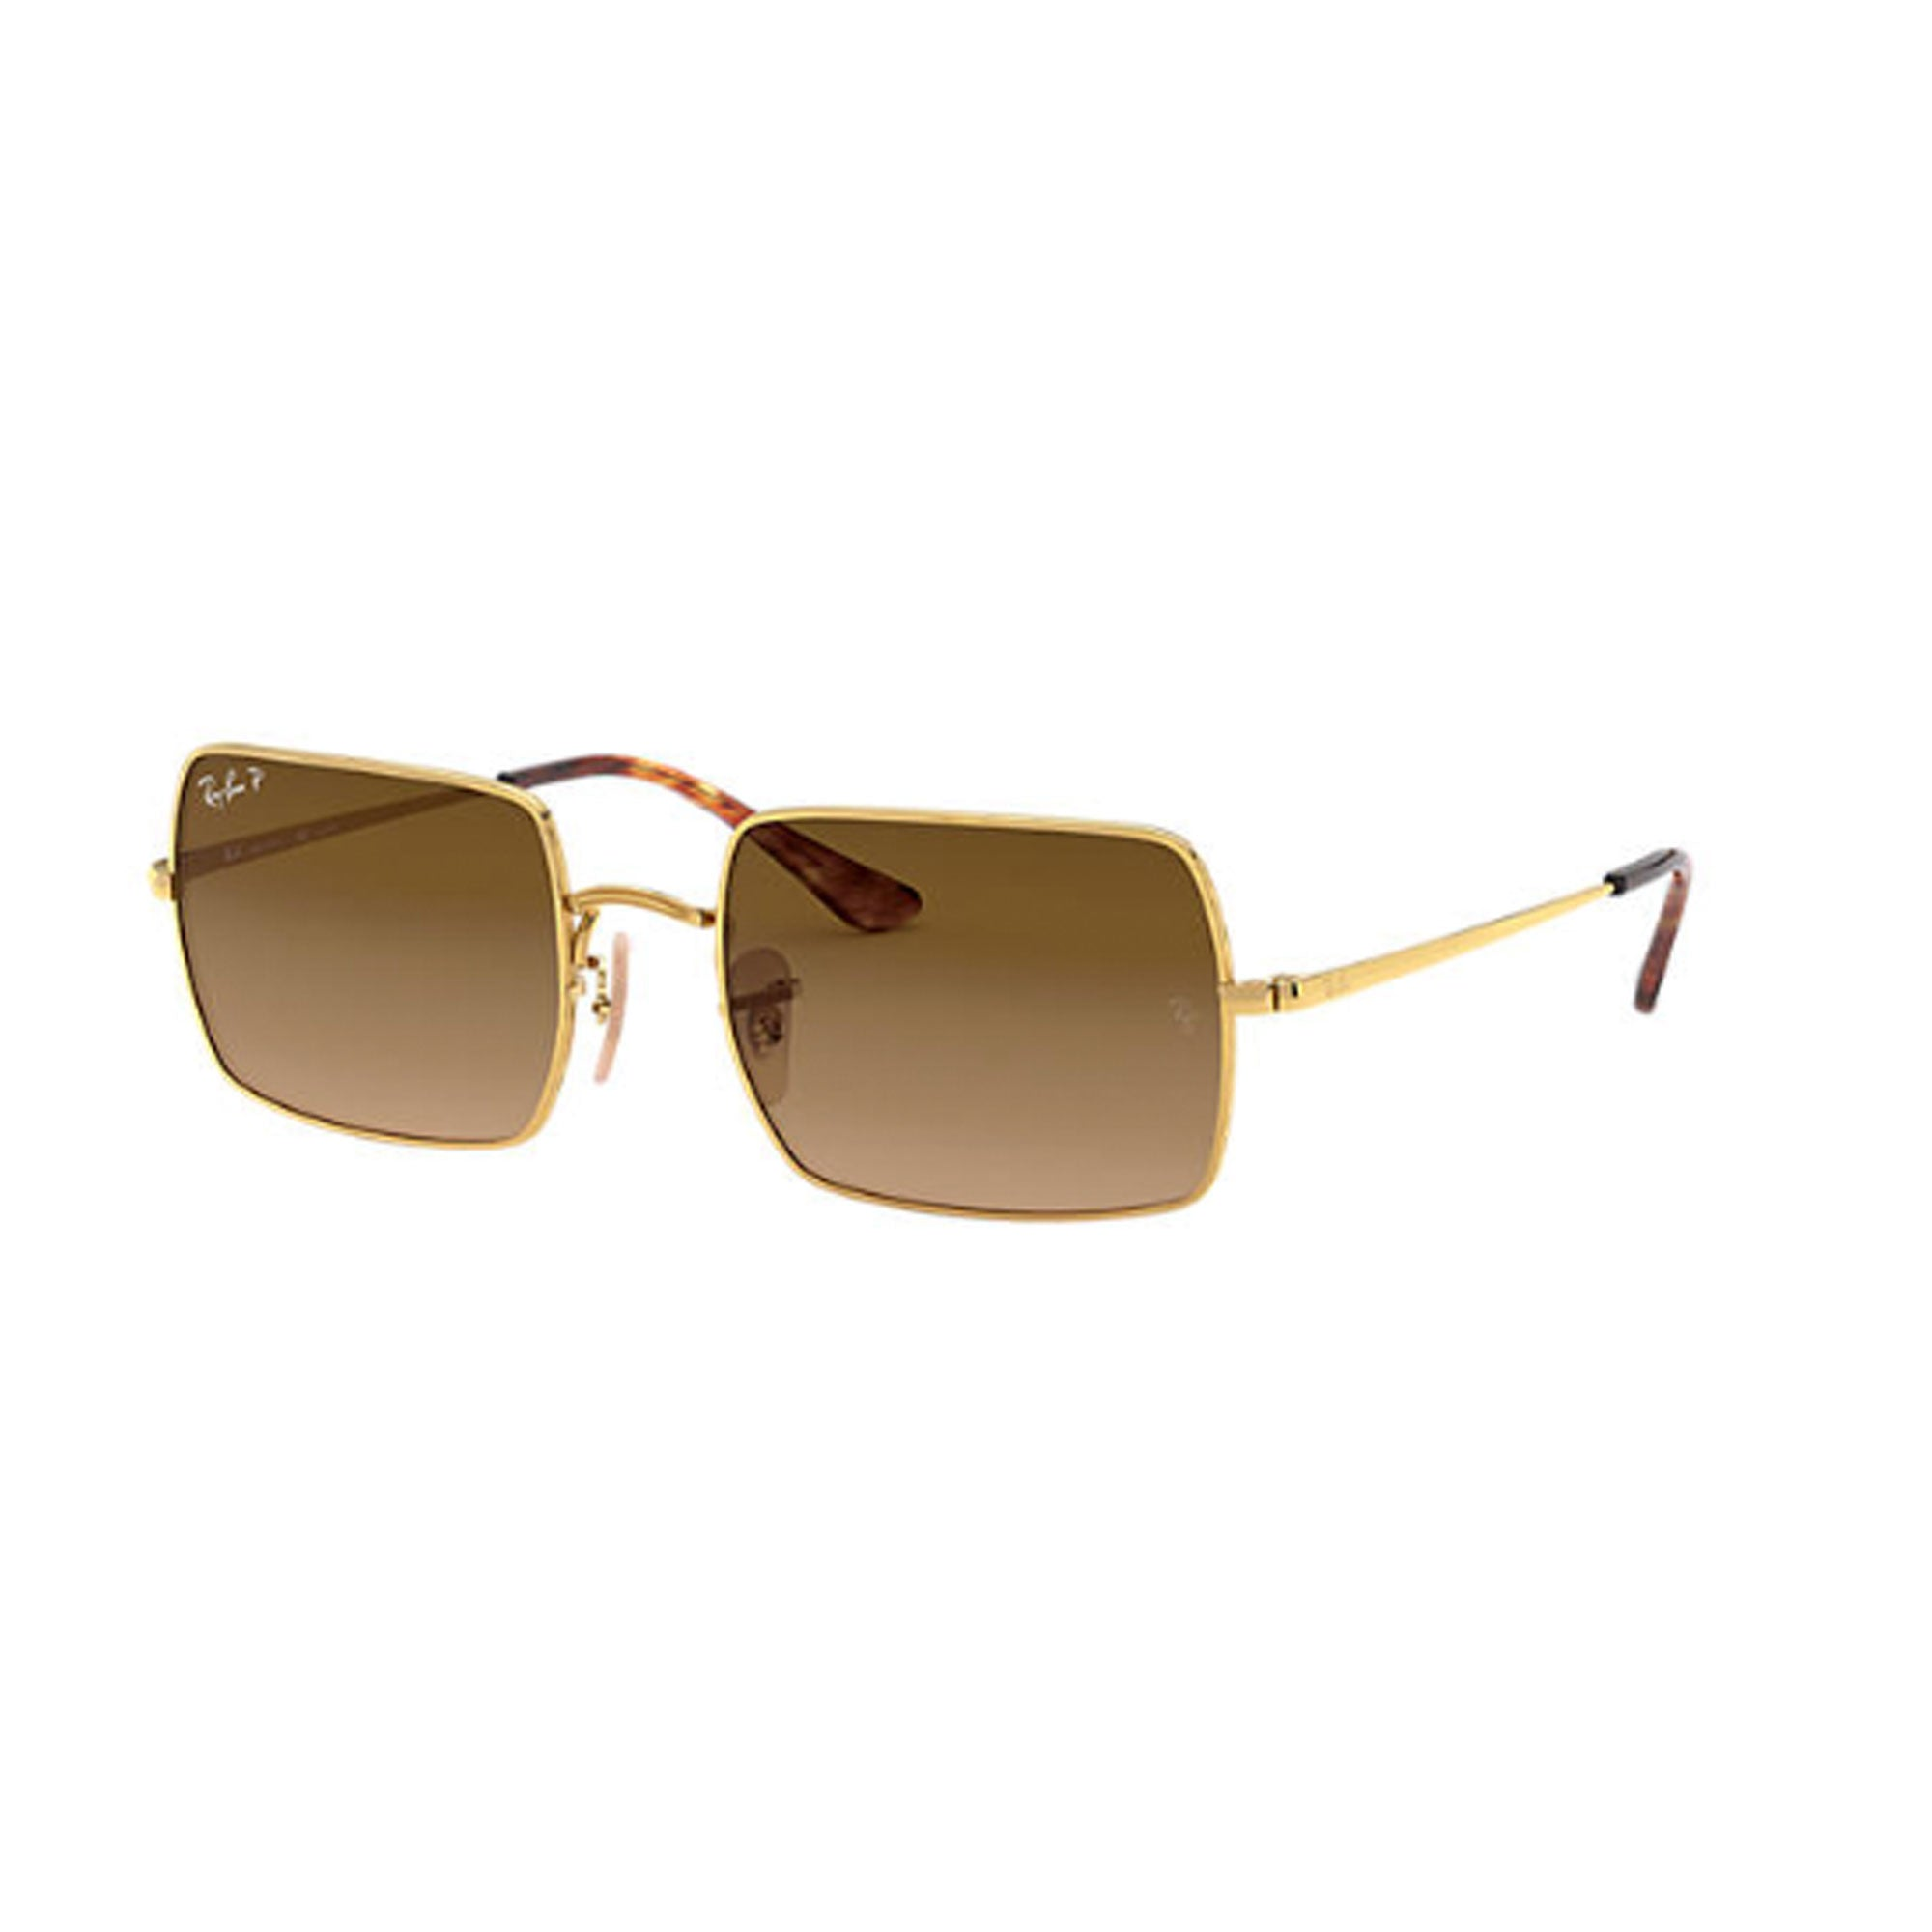 Ray-Ban Rectangle 1969 Sunglasses - Polarized - Gold/Brown